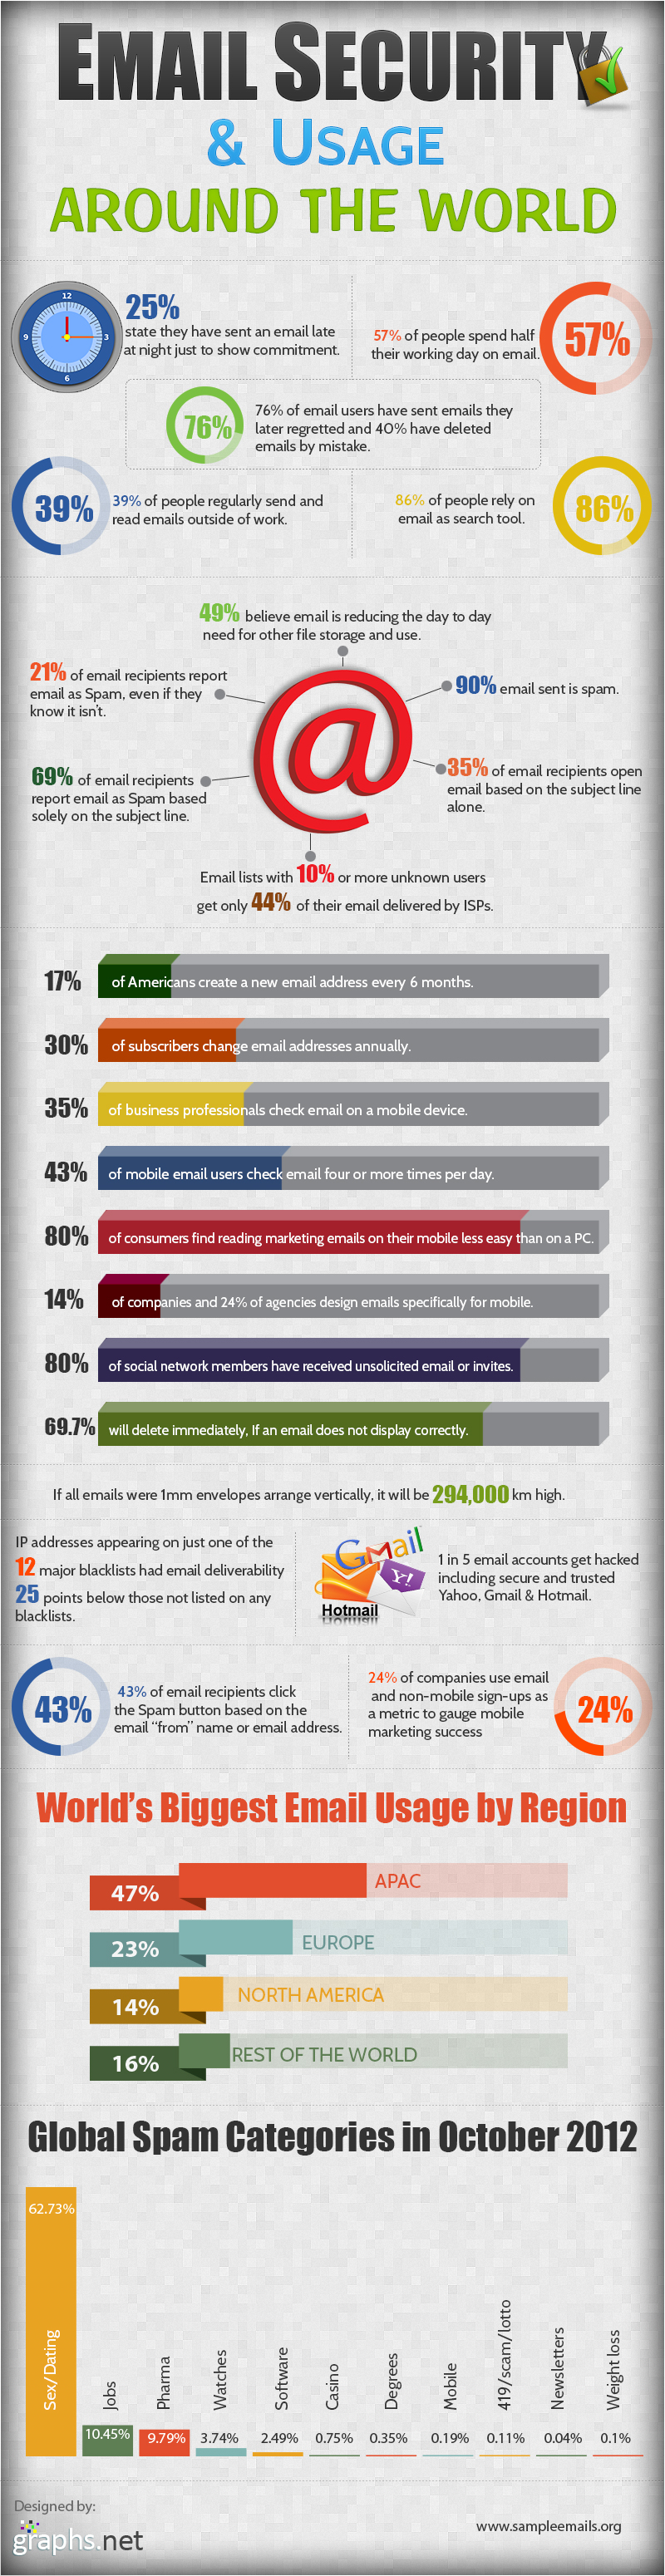 Facts and Statistics about Email